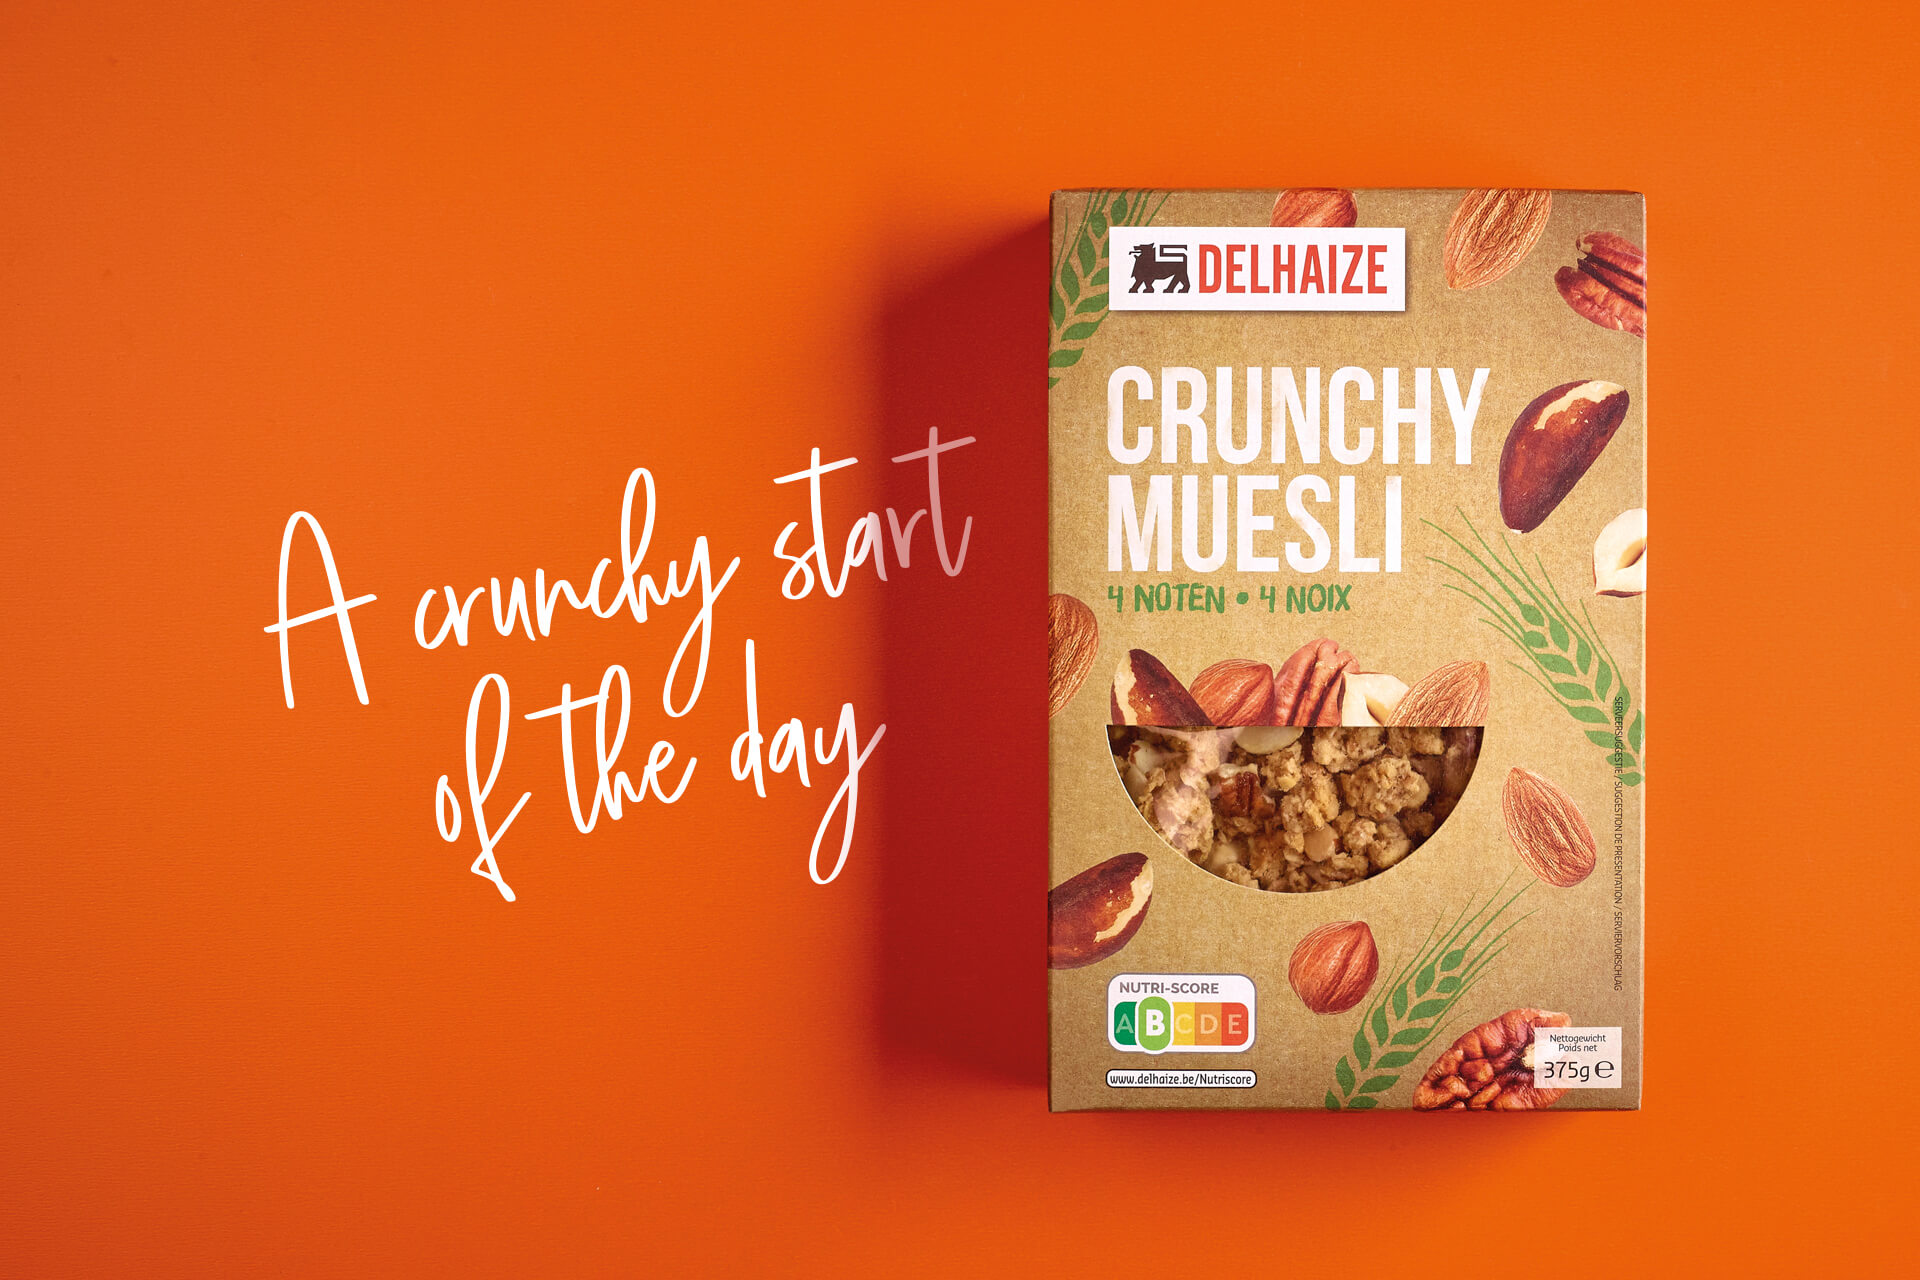 Delhaize Crunchy Muesli Packaging